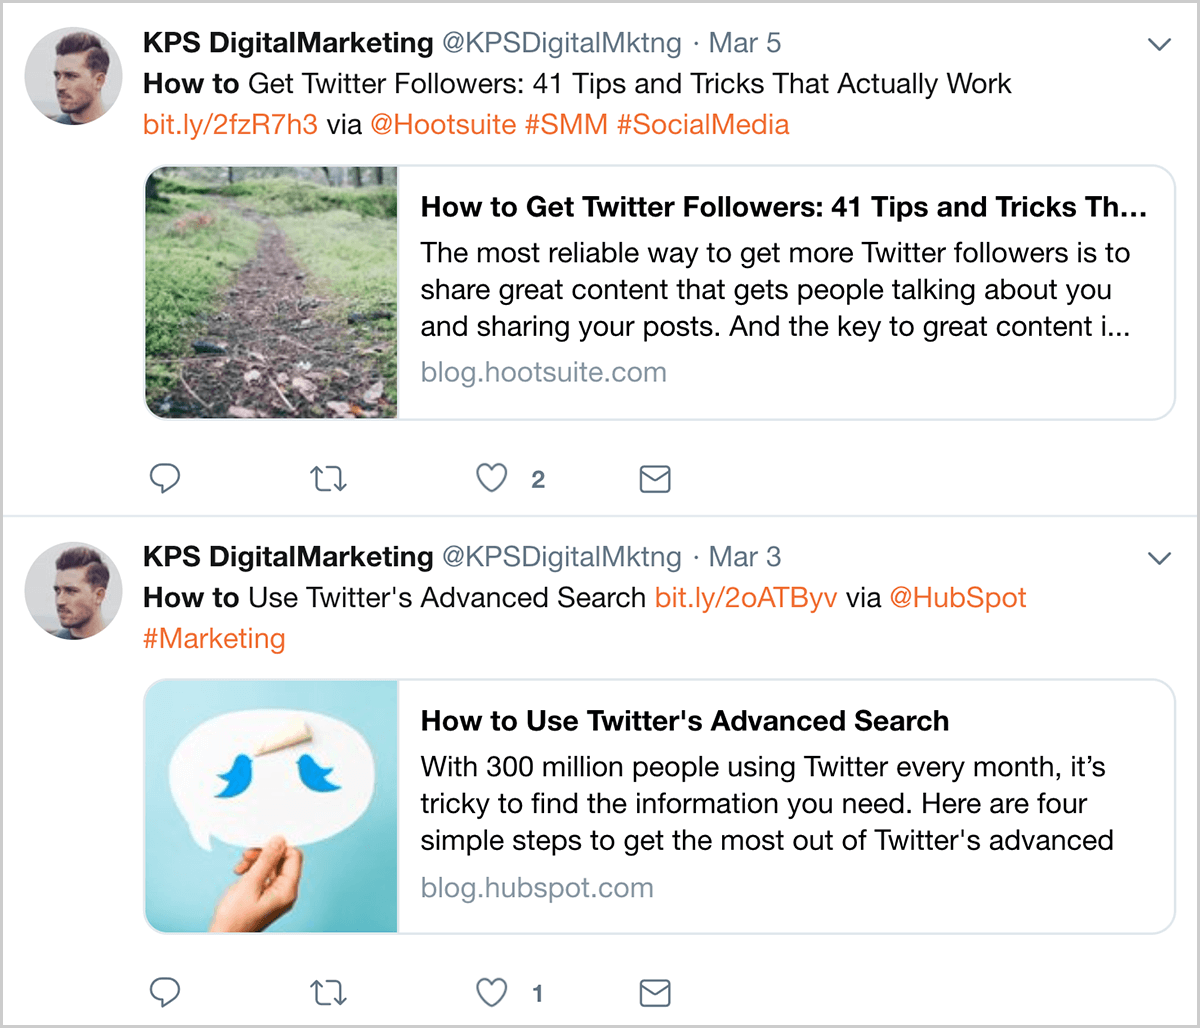 a41b63b2fa This is a screenshot of automated tweets from  KPSDigitalMarketing posted  on March 3 and March